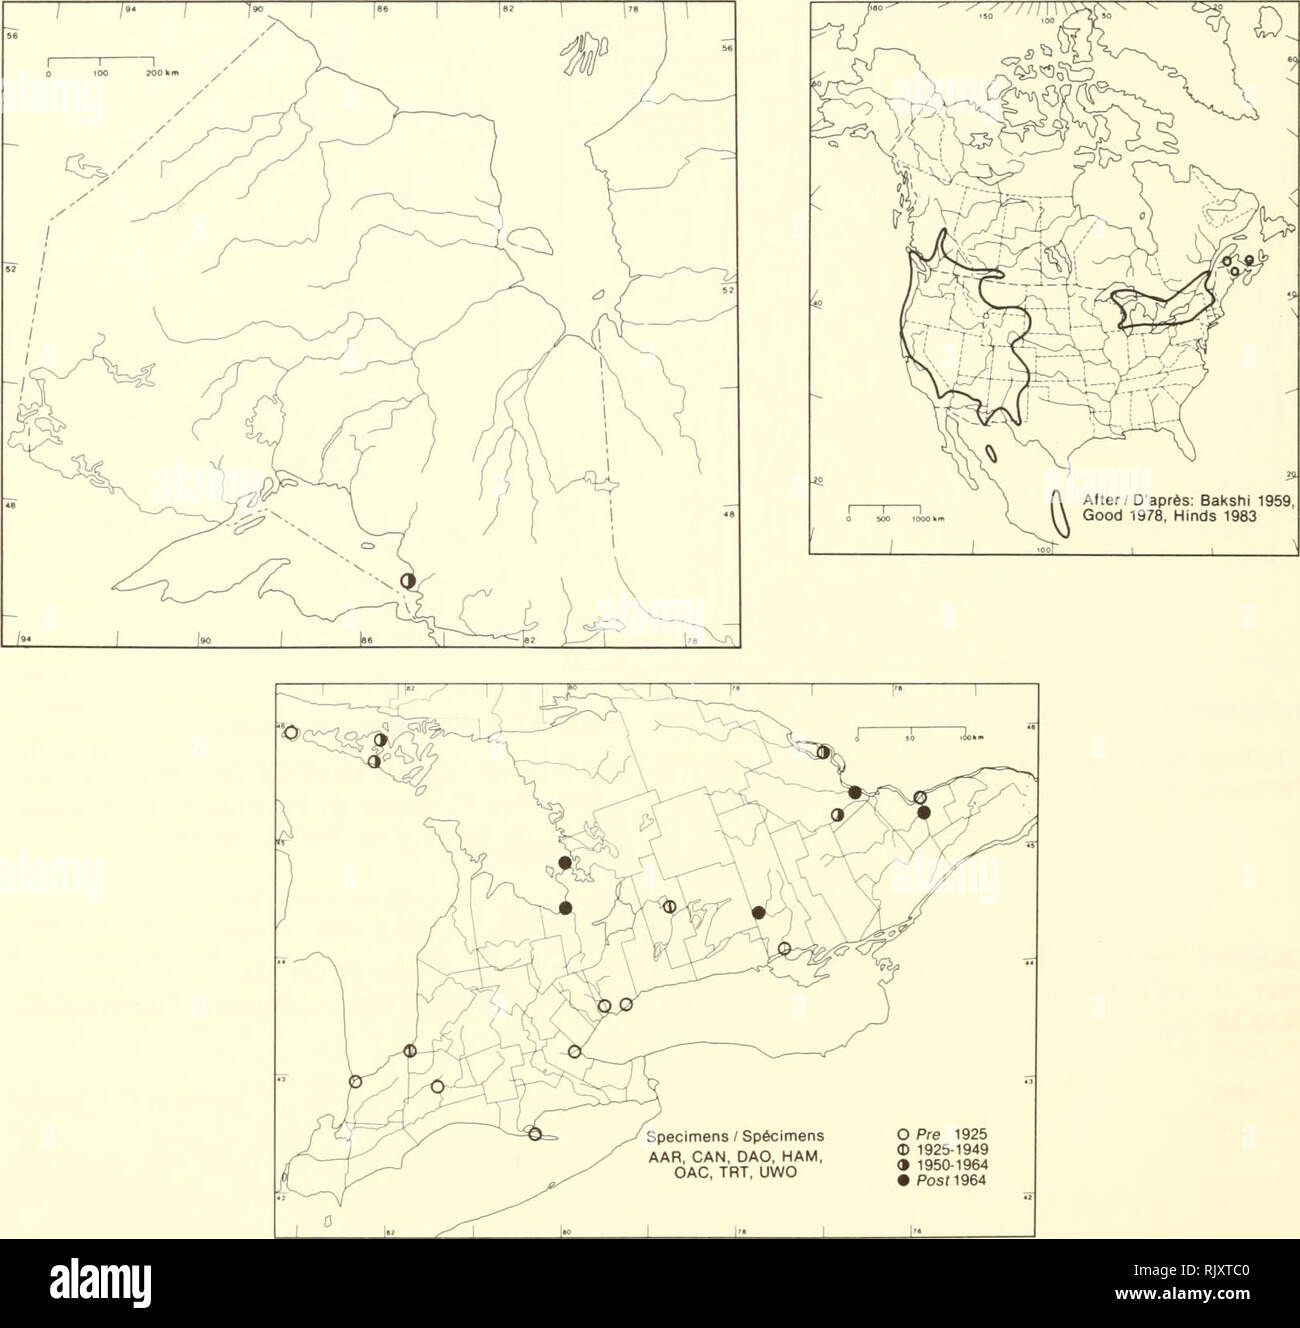 . Atlas of the rare vascular plants of Ontario. Rare plants; Botany. Atlas of the Rare Vascular Plants of Ontario / Atlas des plantes vasculaires rares de l'Ontario ERICACEAE Pterospora andromedea Nutt. Pine-drops Ptérospore andromède. Specimens / Spécimens AAR, CAN, DAO, HAM, GAG, TRT, UWO O Pre 1925 © 1925-1949 9 1950-1964 • Posf1964 HABITAT: Mixed and deciduous woods. STATUS: Rare in Alberta, New Brunswicl<, Quebec, and Saskatchewan. Possibly extirpated in New Hampshire and New York; endangered in Texas and Wisconsin; rare in Nevada and Vernnont. HABITAT: Forêts de peuplement mélangé et  Stock Photo